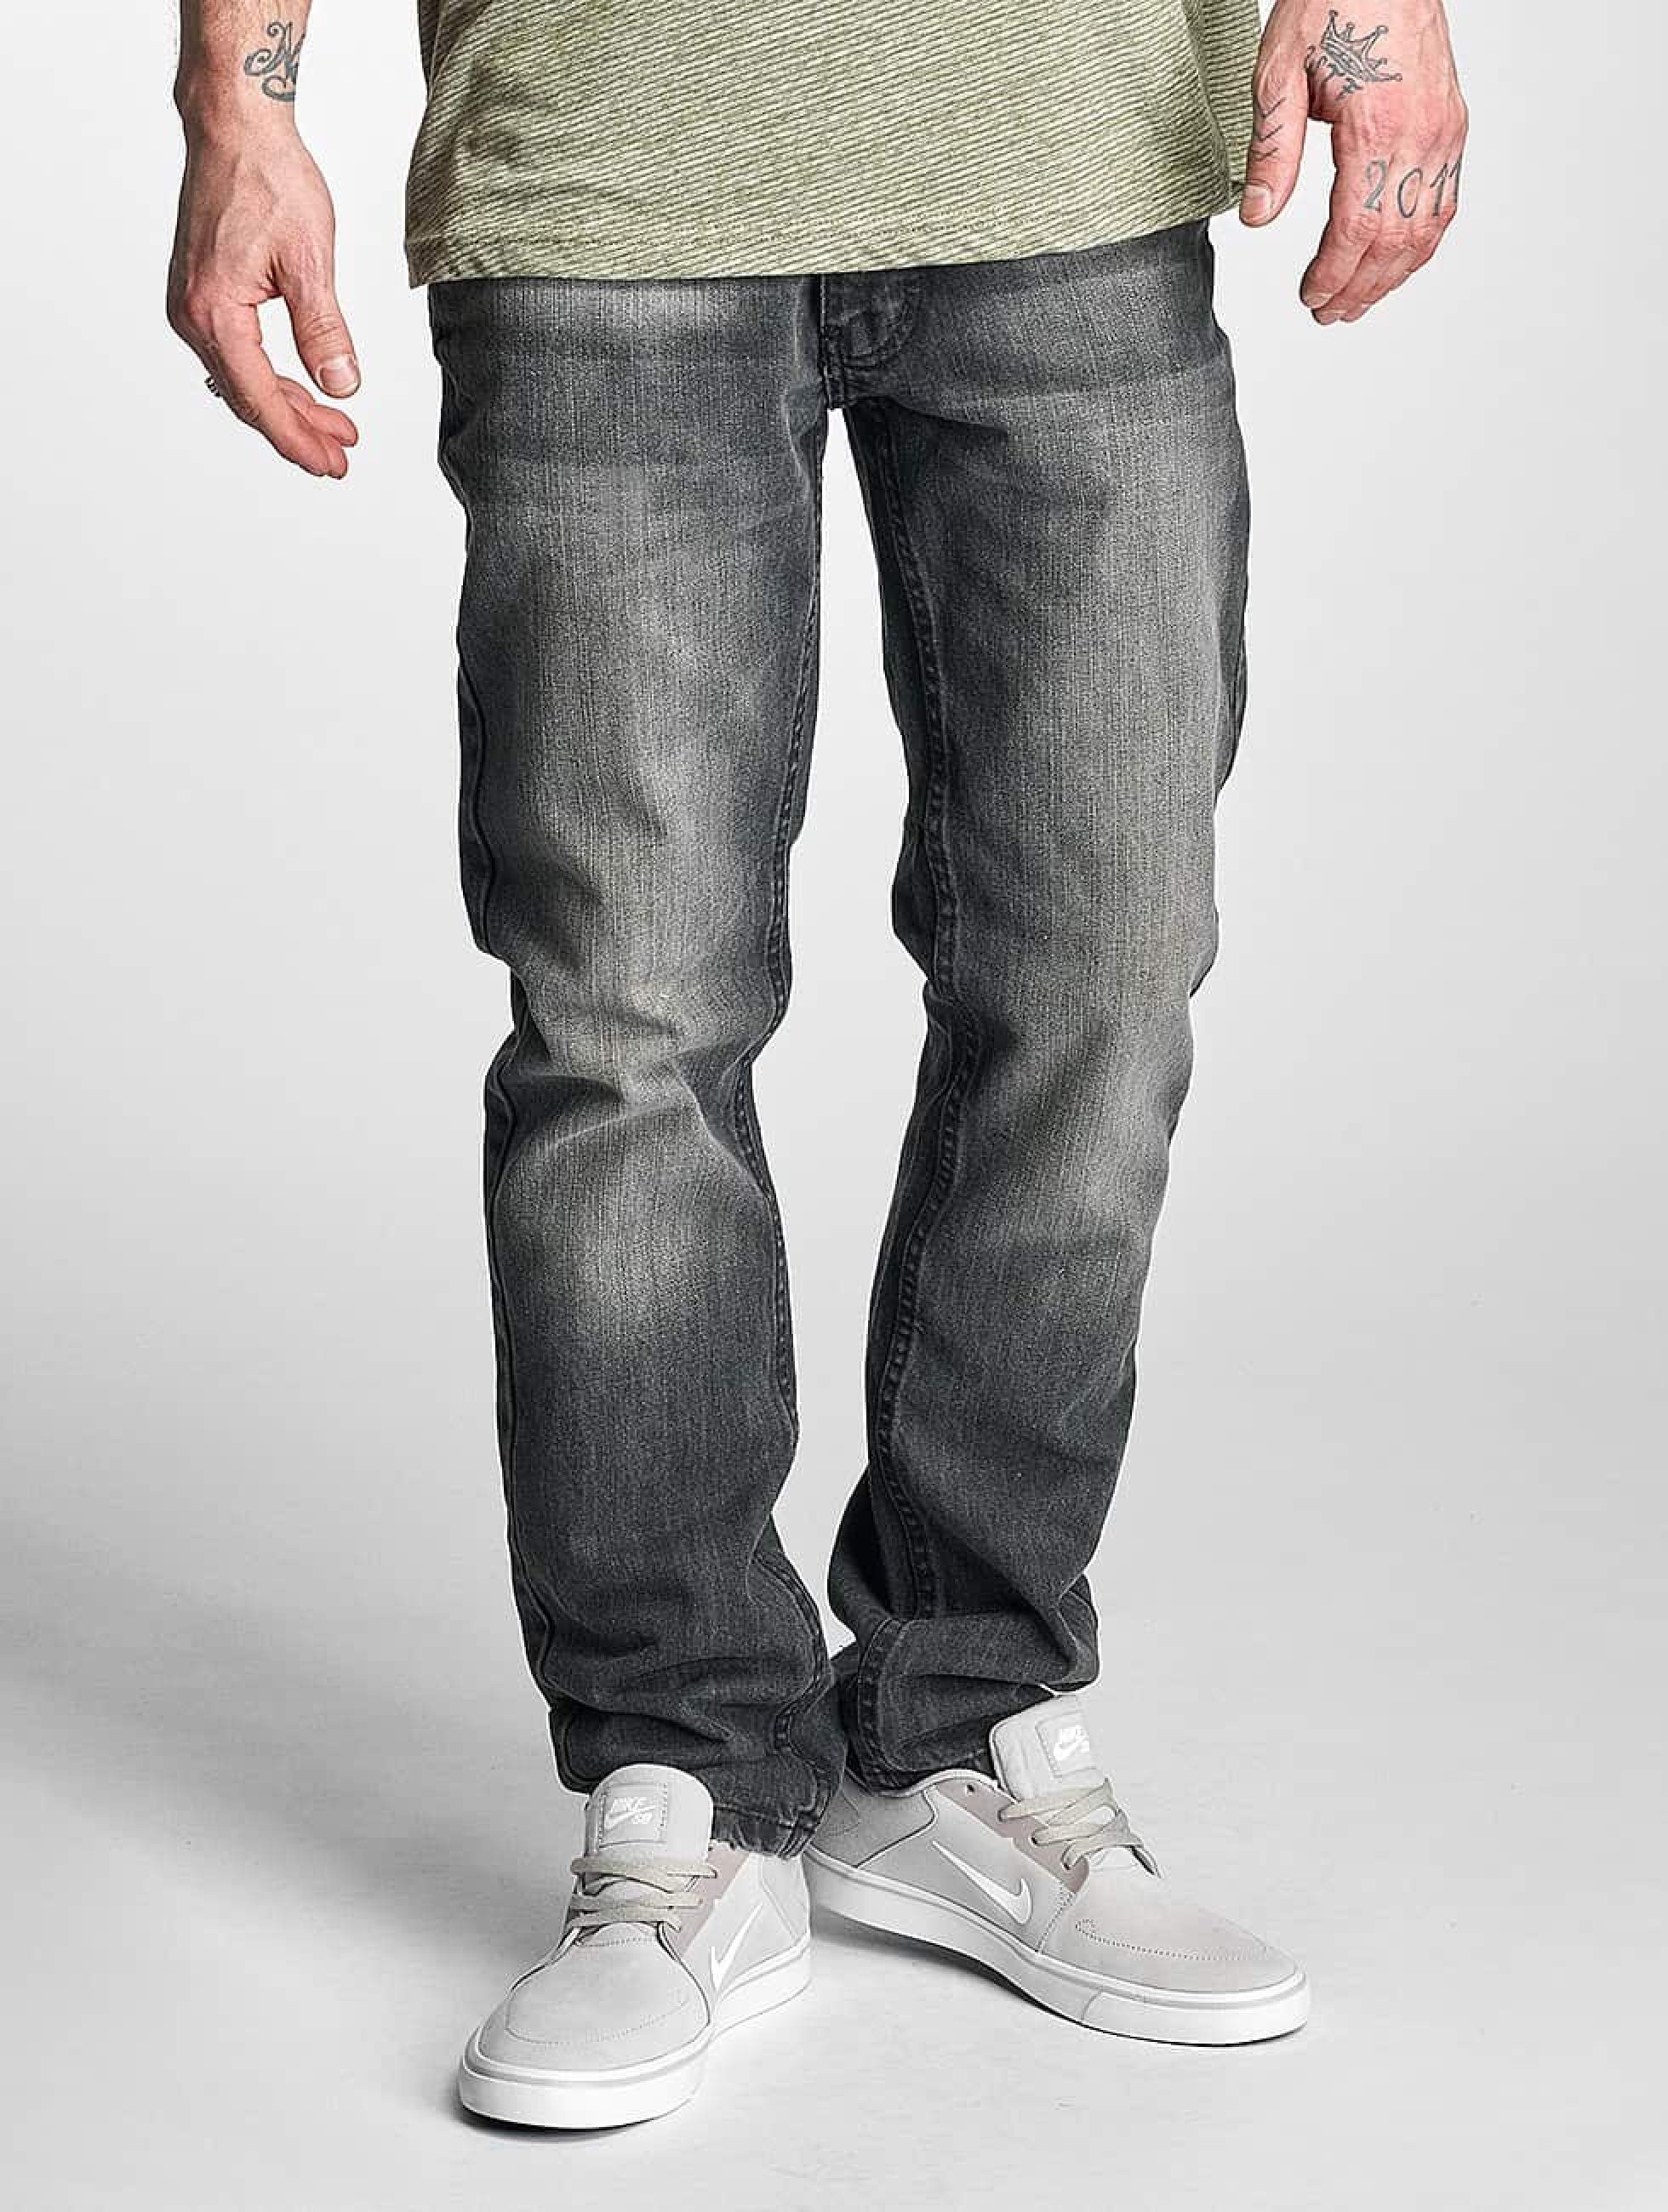 Rocawear / Straight Fit Jeans Relaxed in grey W 38